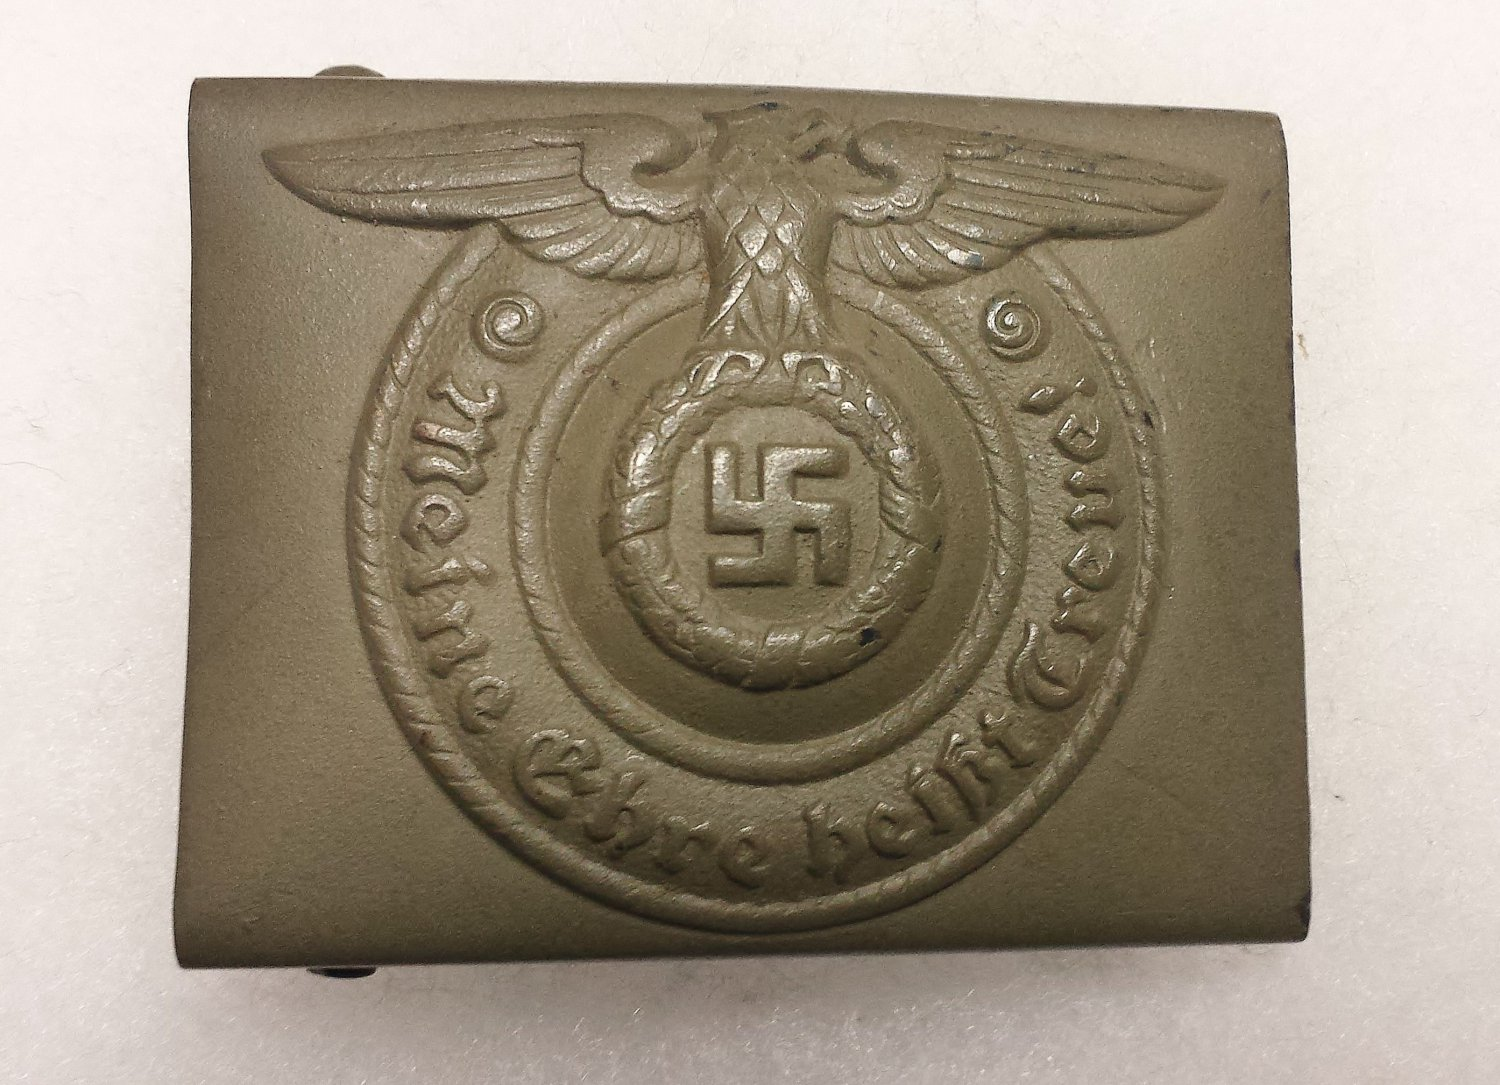 WWII GERMAN SS OLIVE DRAB ENLISTED MAN'S BELT BUCKLE-  *RARE*